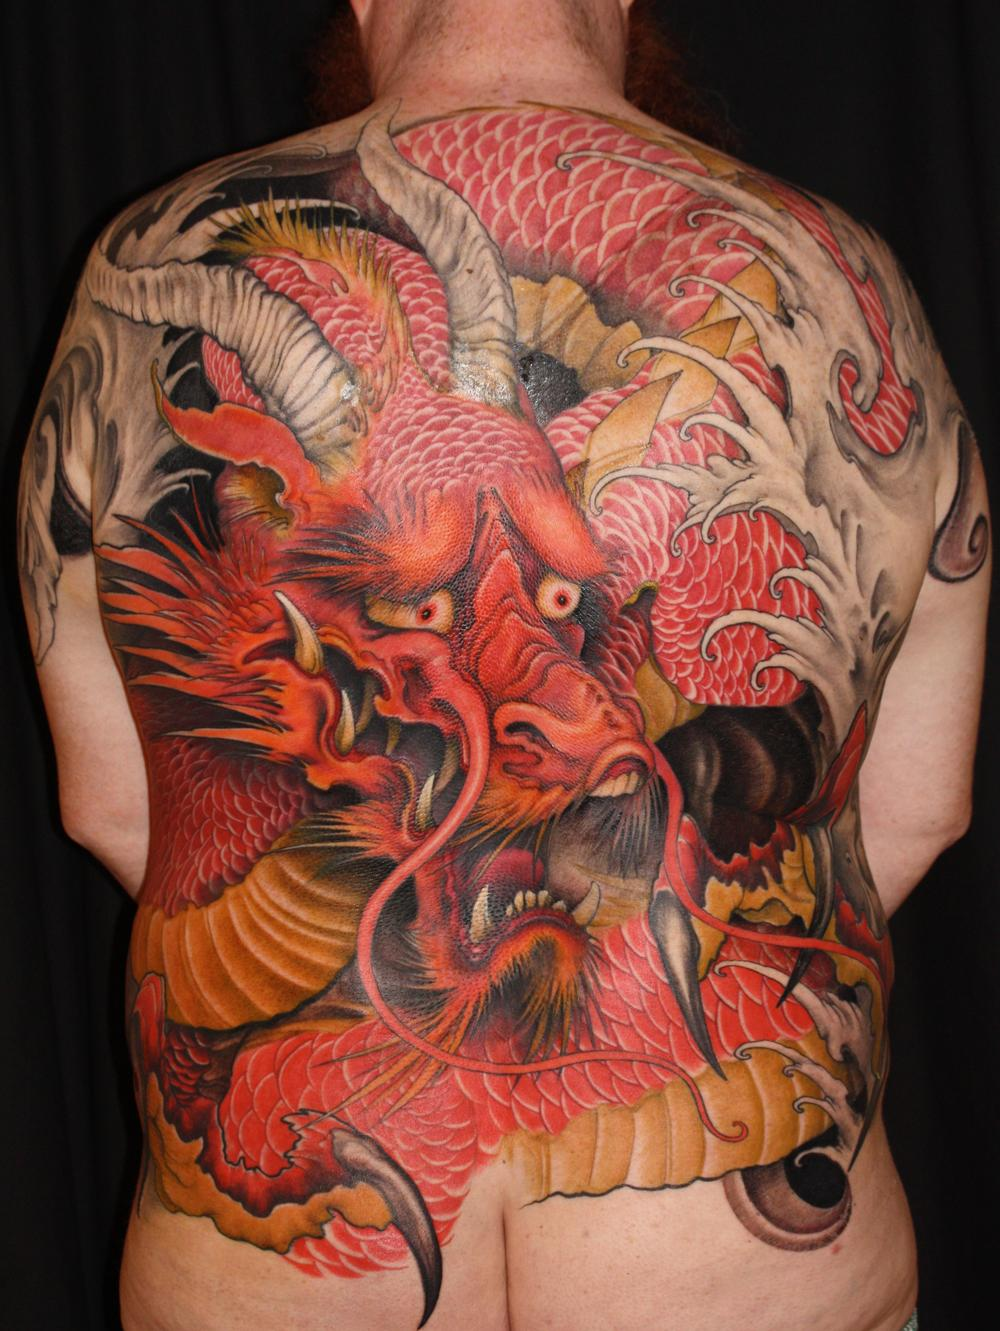 Jeff Gogue - red dragon